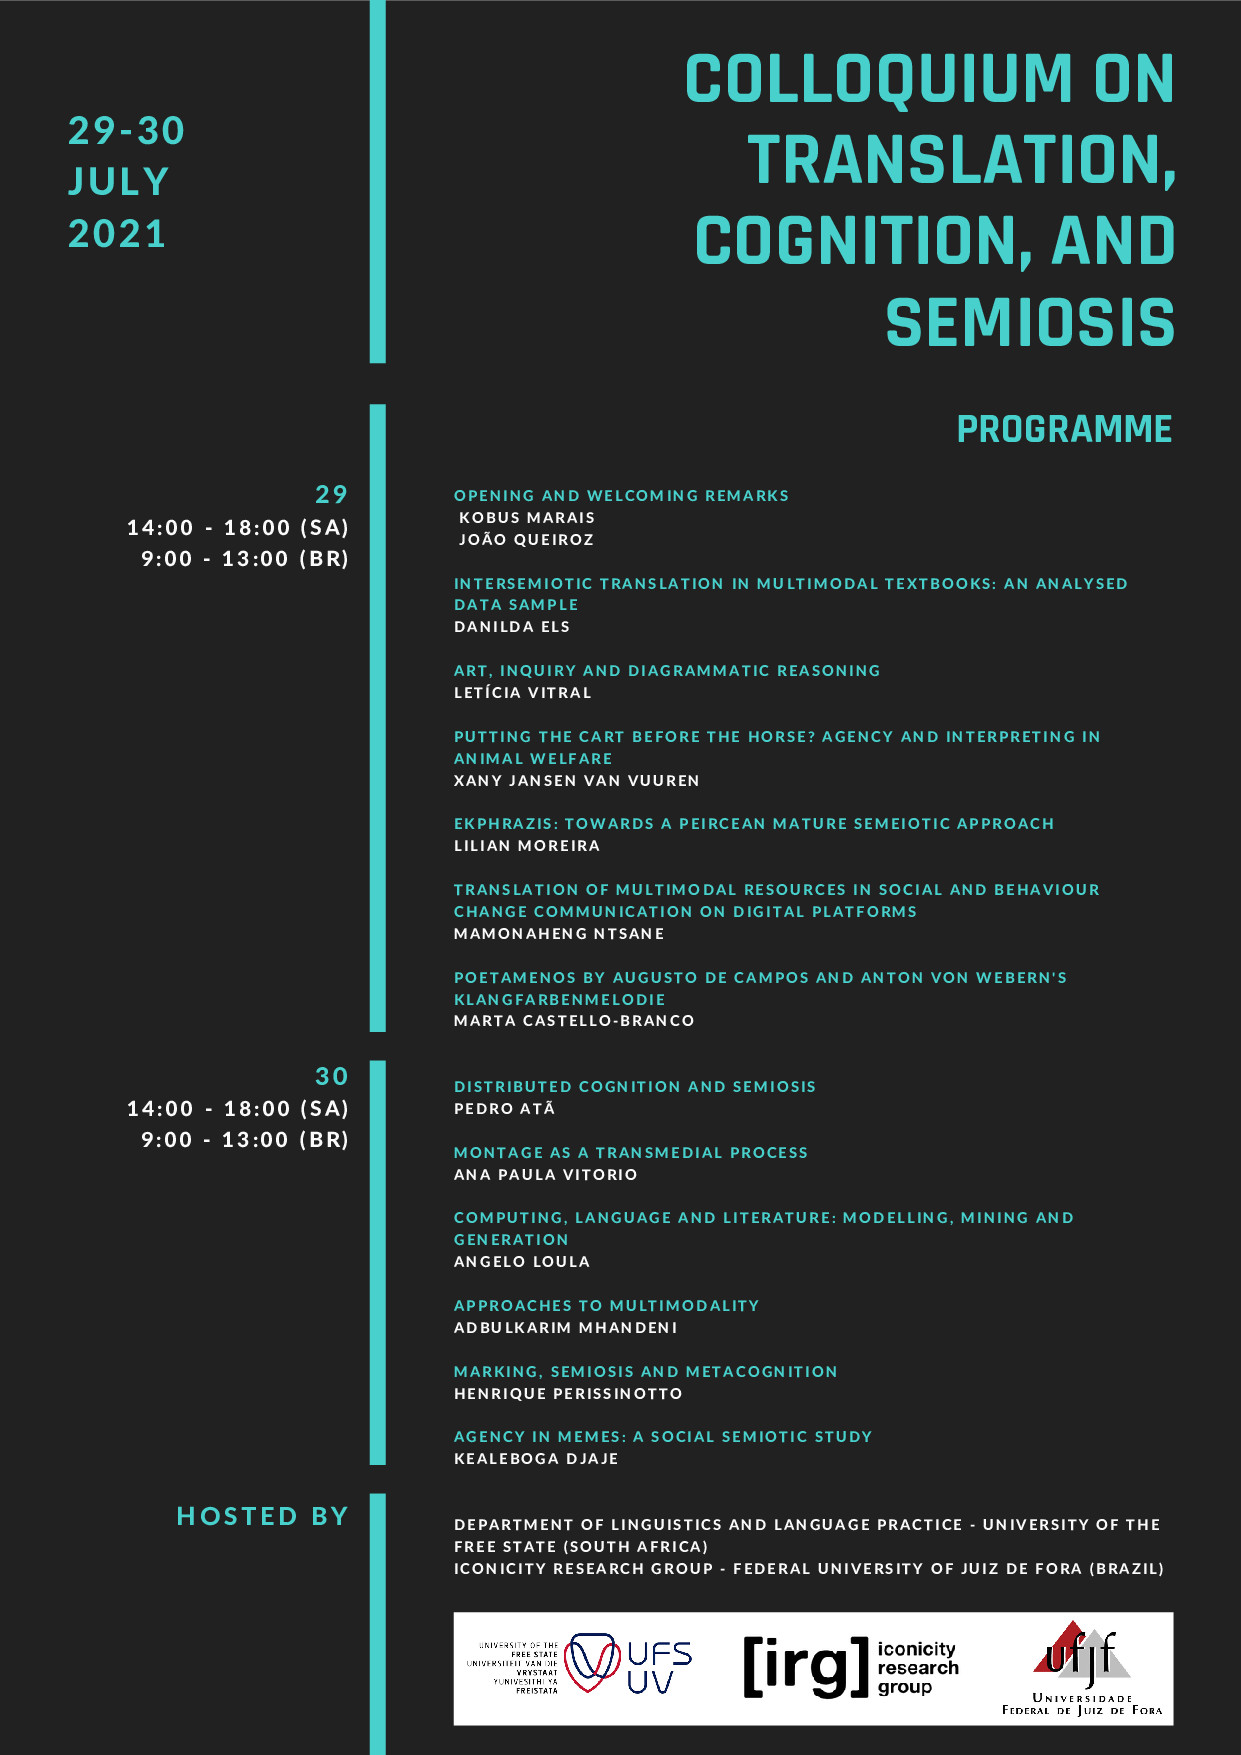 FINAL FINAL PROGRAMME Colloquium on Translation, Cognition, and Semiosis